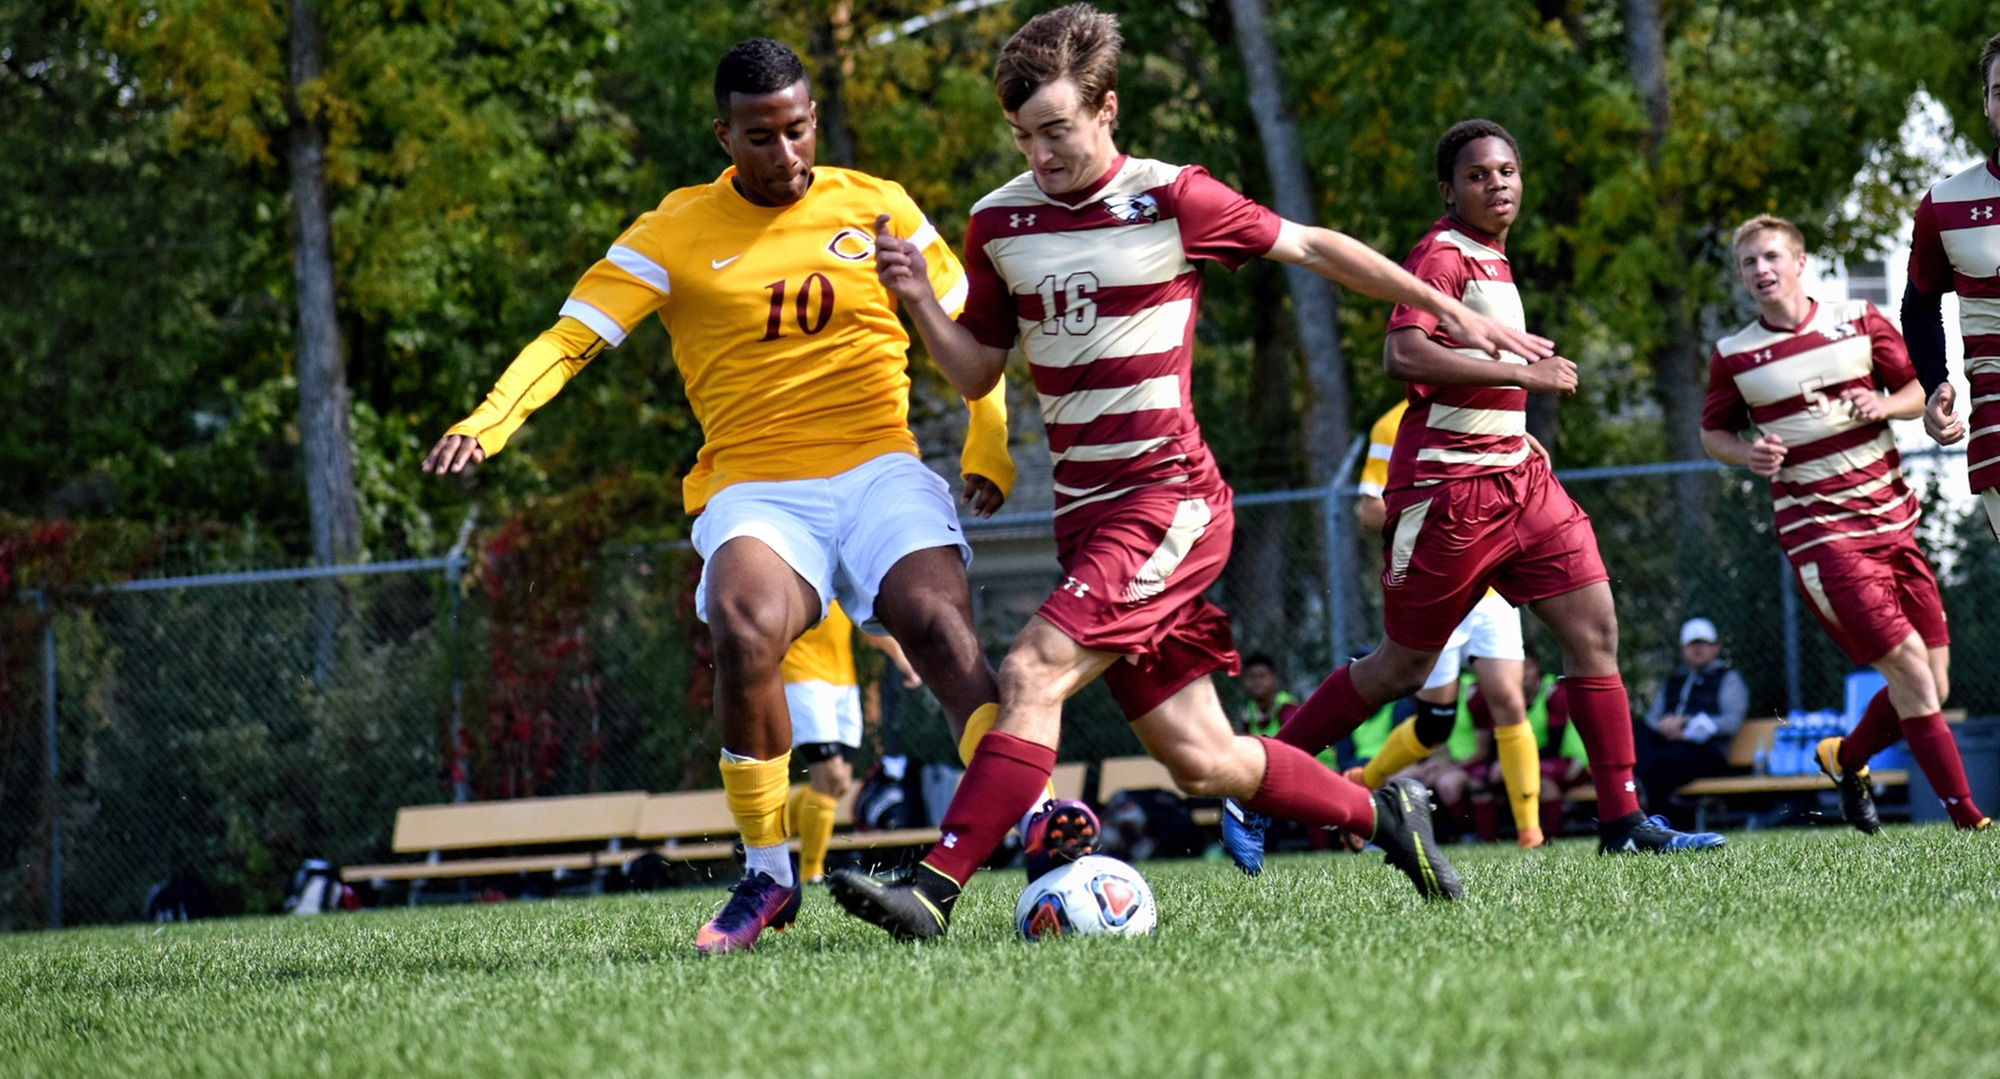 Junior Pierre Freitas-Elysee battles for the ball in the Cobbers' win over Coe. Freitas-Elysee assisted on the game-winning goal in double overtime. (Photo courtesy of Maddy Reed)